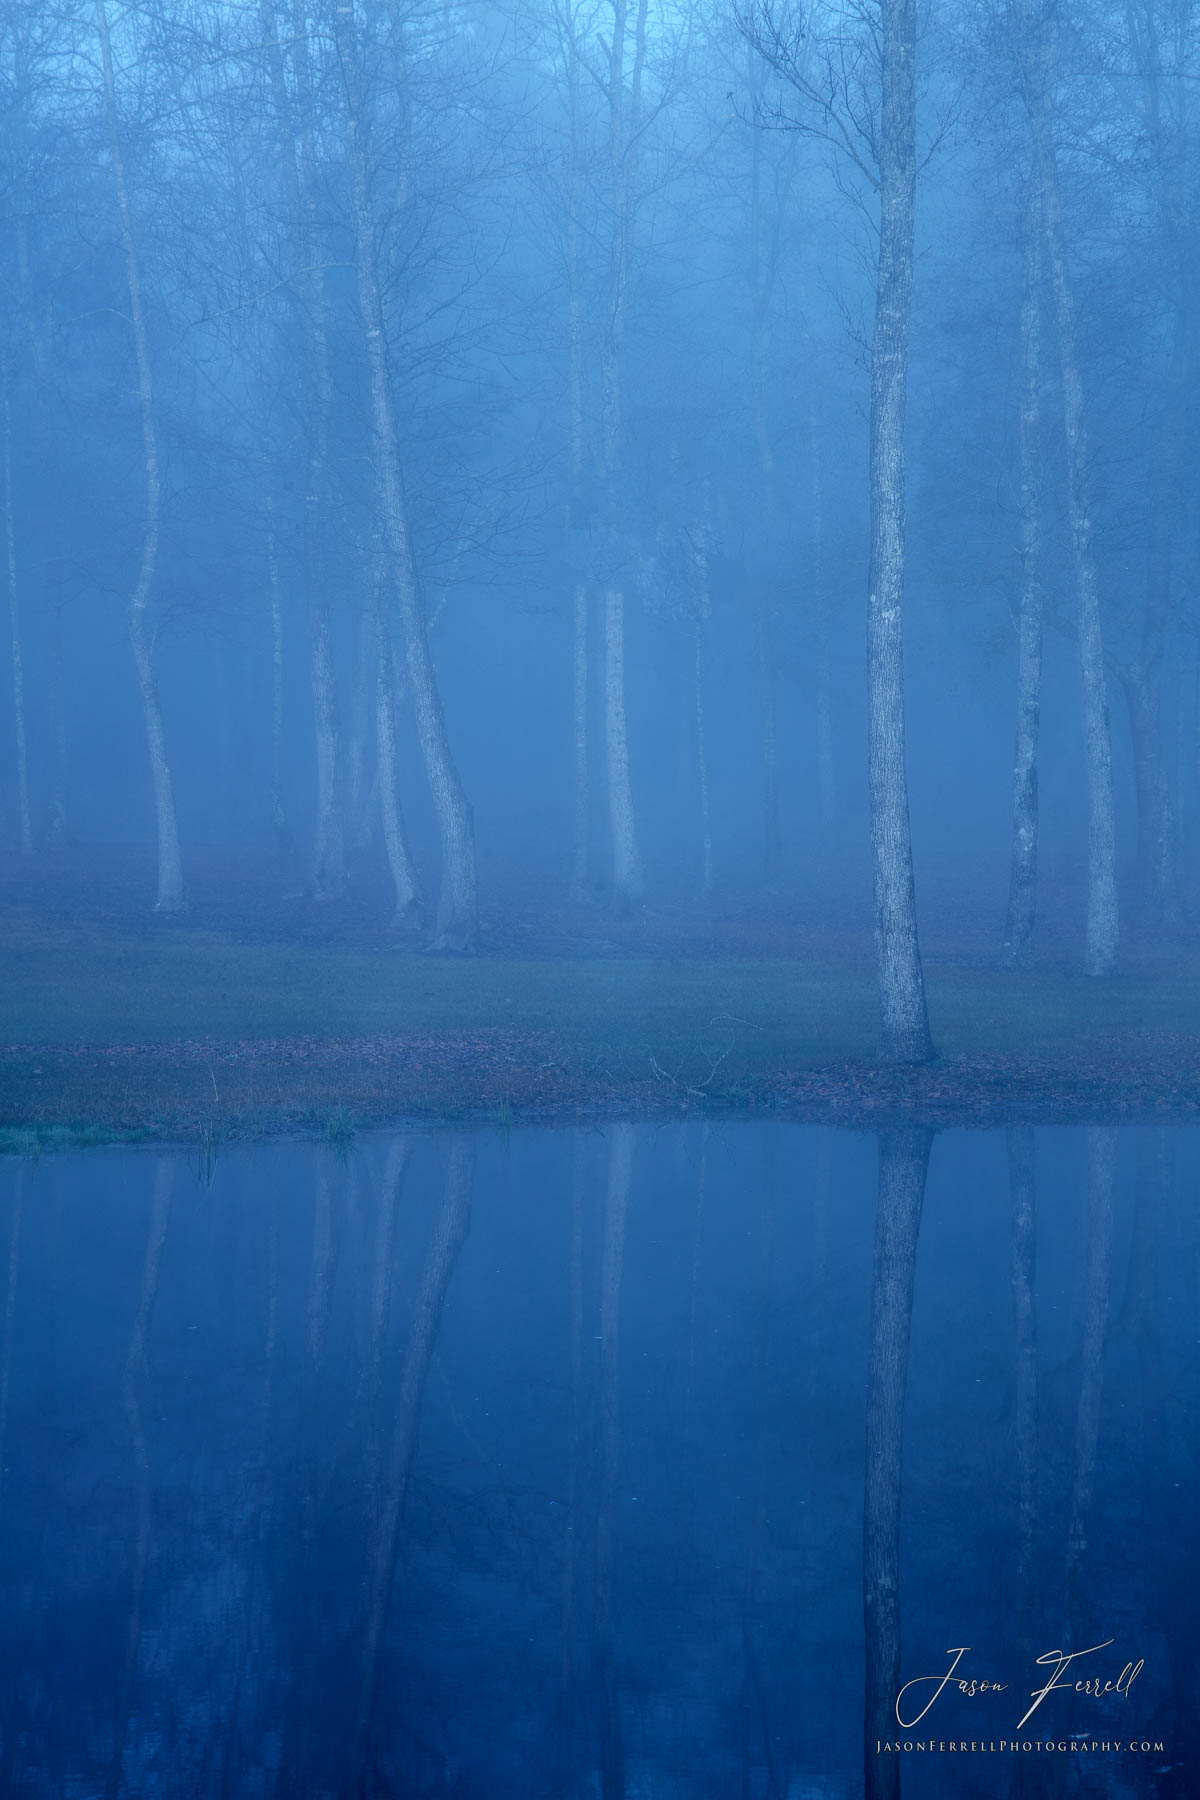 ethereal forest, cherokee county, texas, fog, trees, forest, morning, light, mirrored reflection, photo